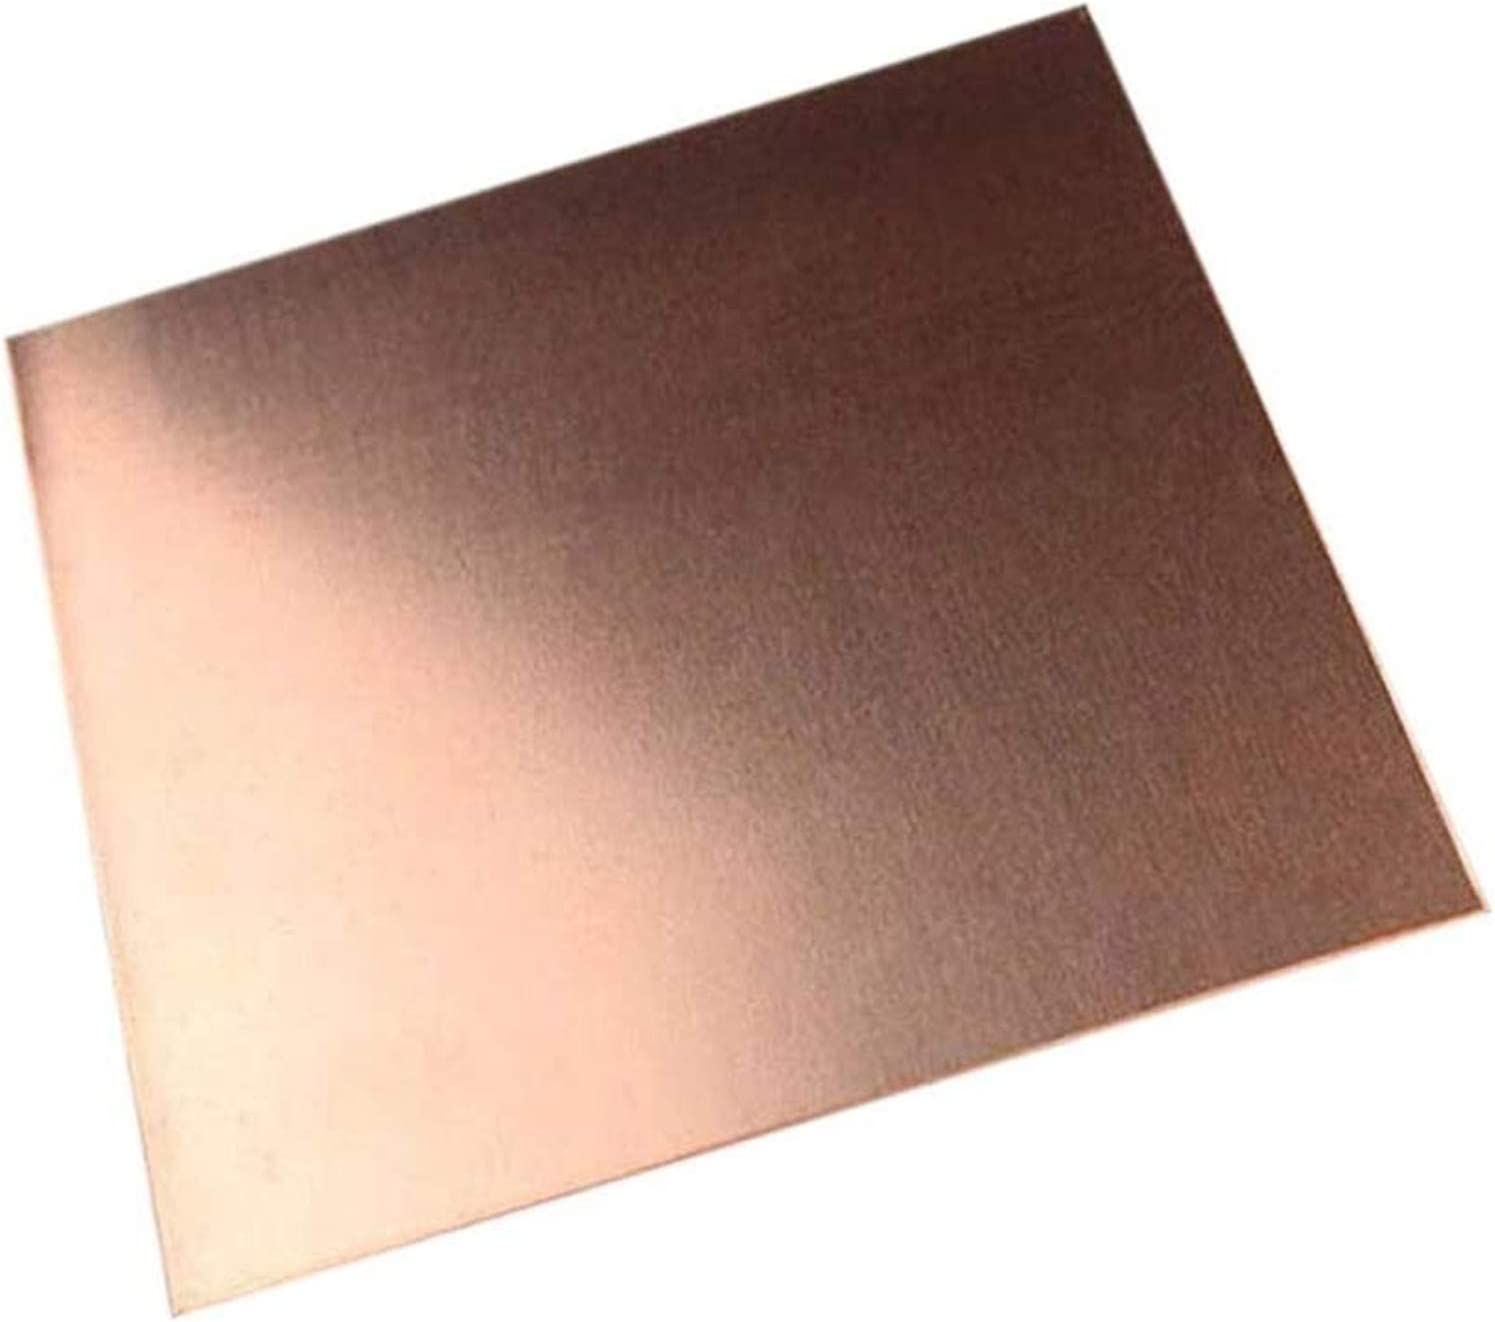 low-pricing YUESFZ Copper Sheet Pure Foil Manufacturer regenerated product Metal Making Jewelry